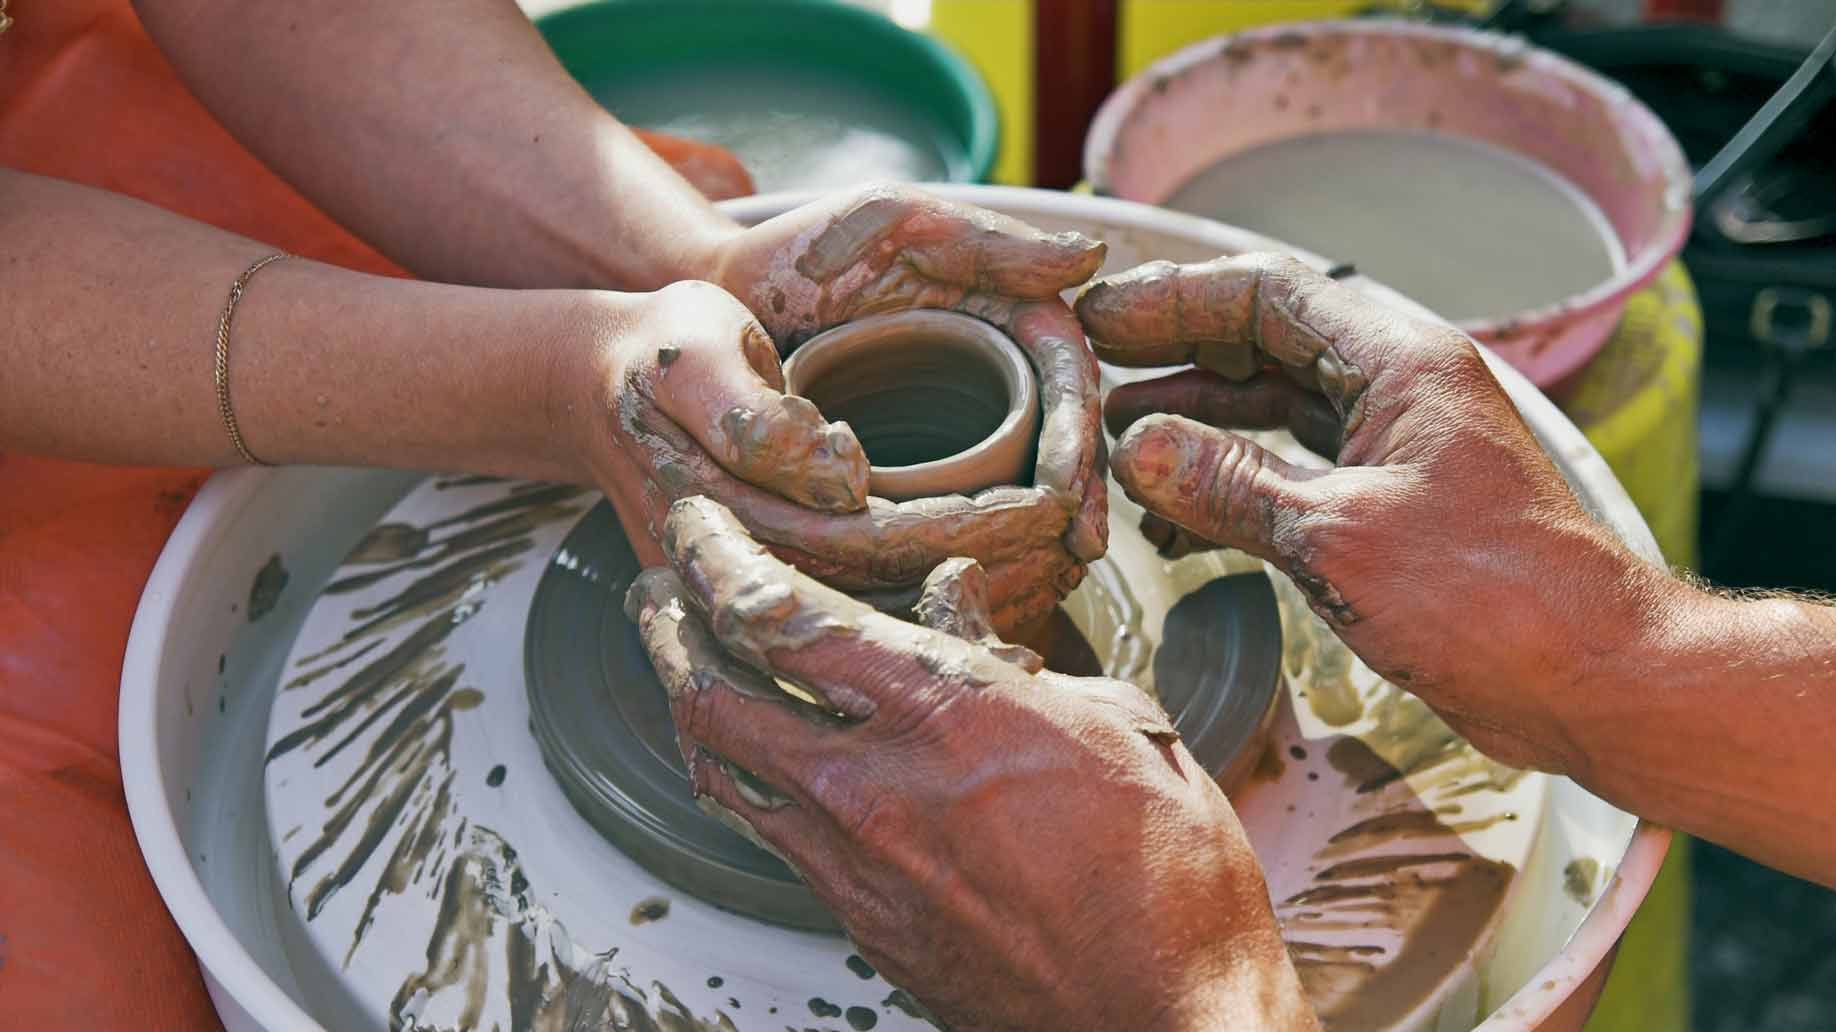 A On Date Making Clay Pottery